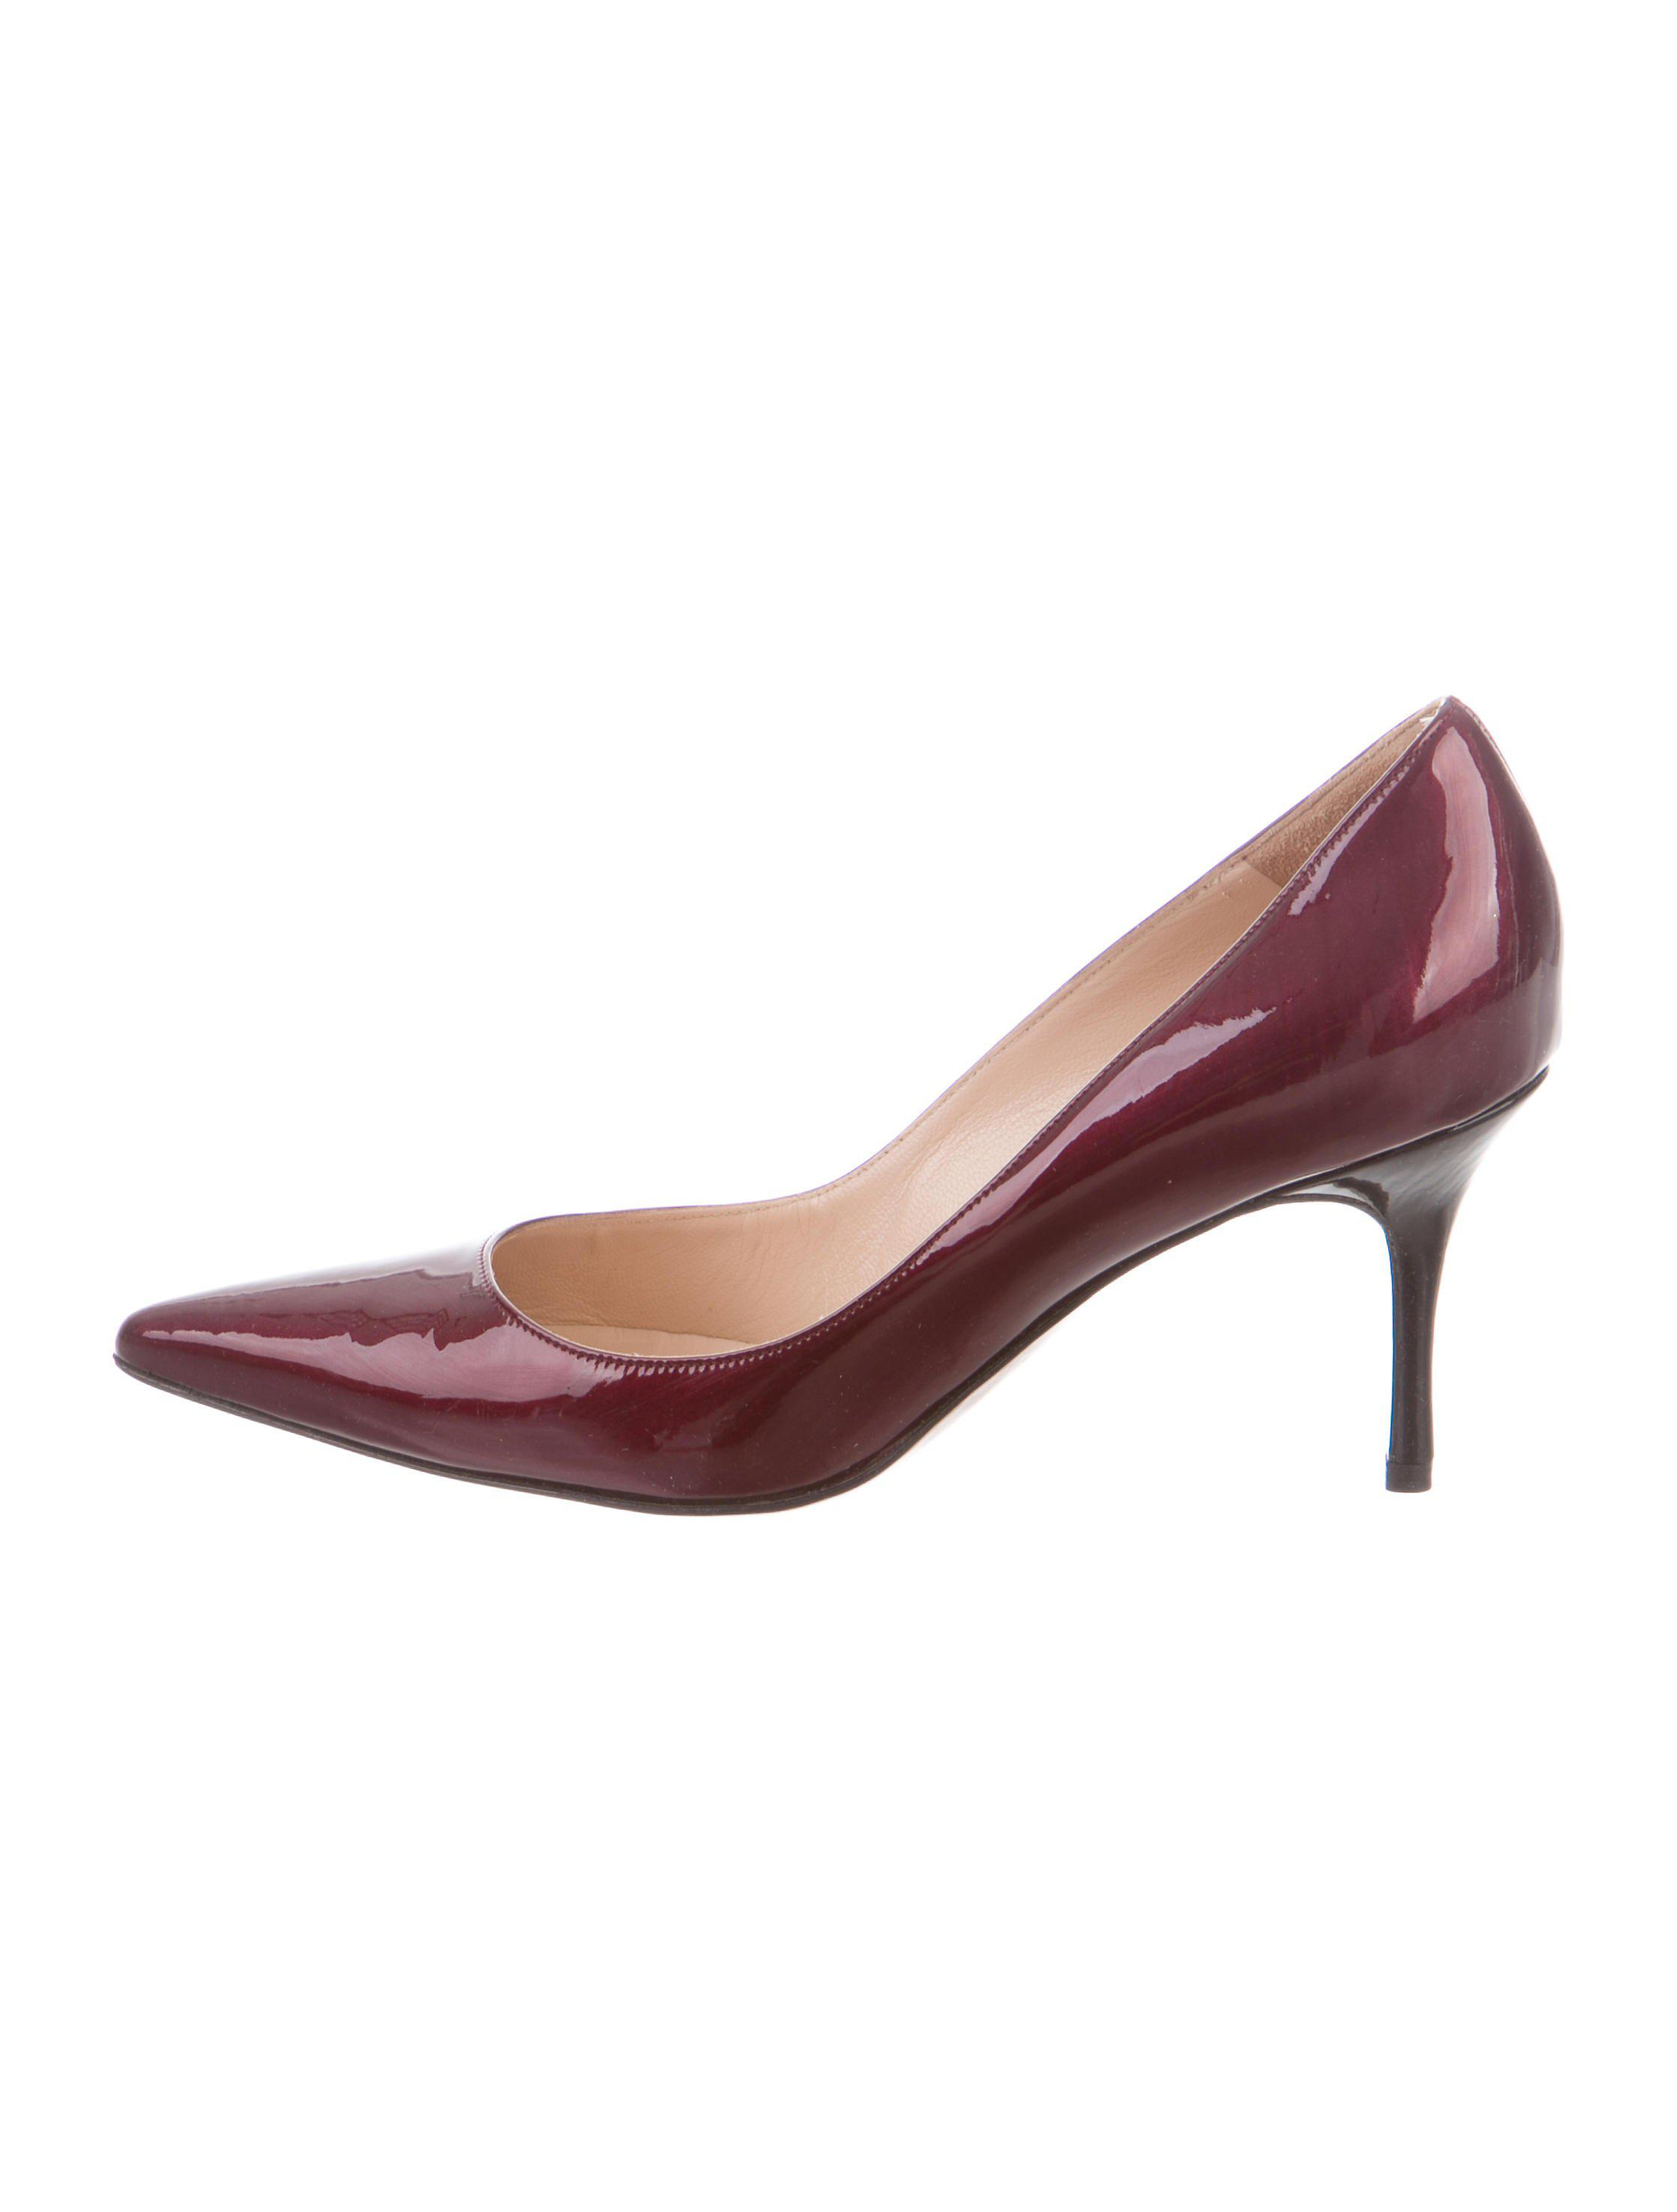 Manolo Blahnik Patent Leather Pointed-Toe Pumps w/ Tags cheap Manchester oiOsol9P